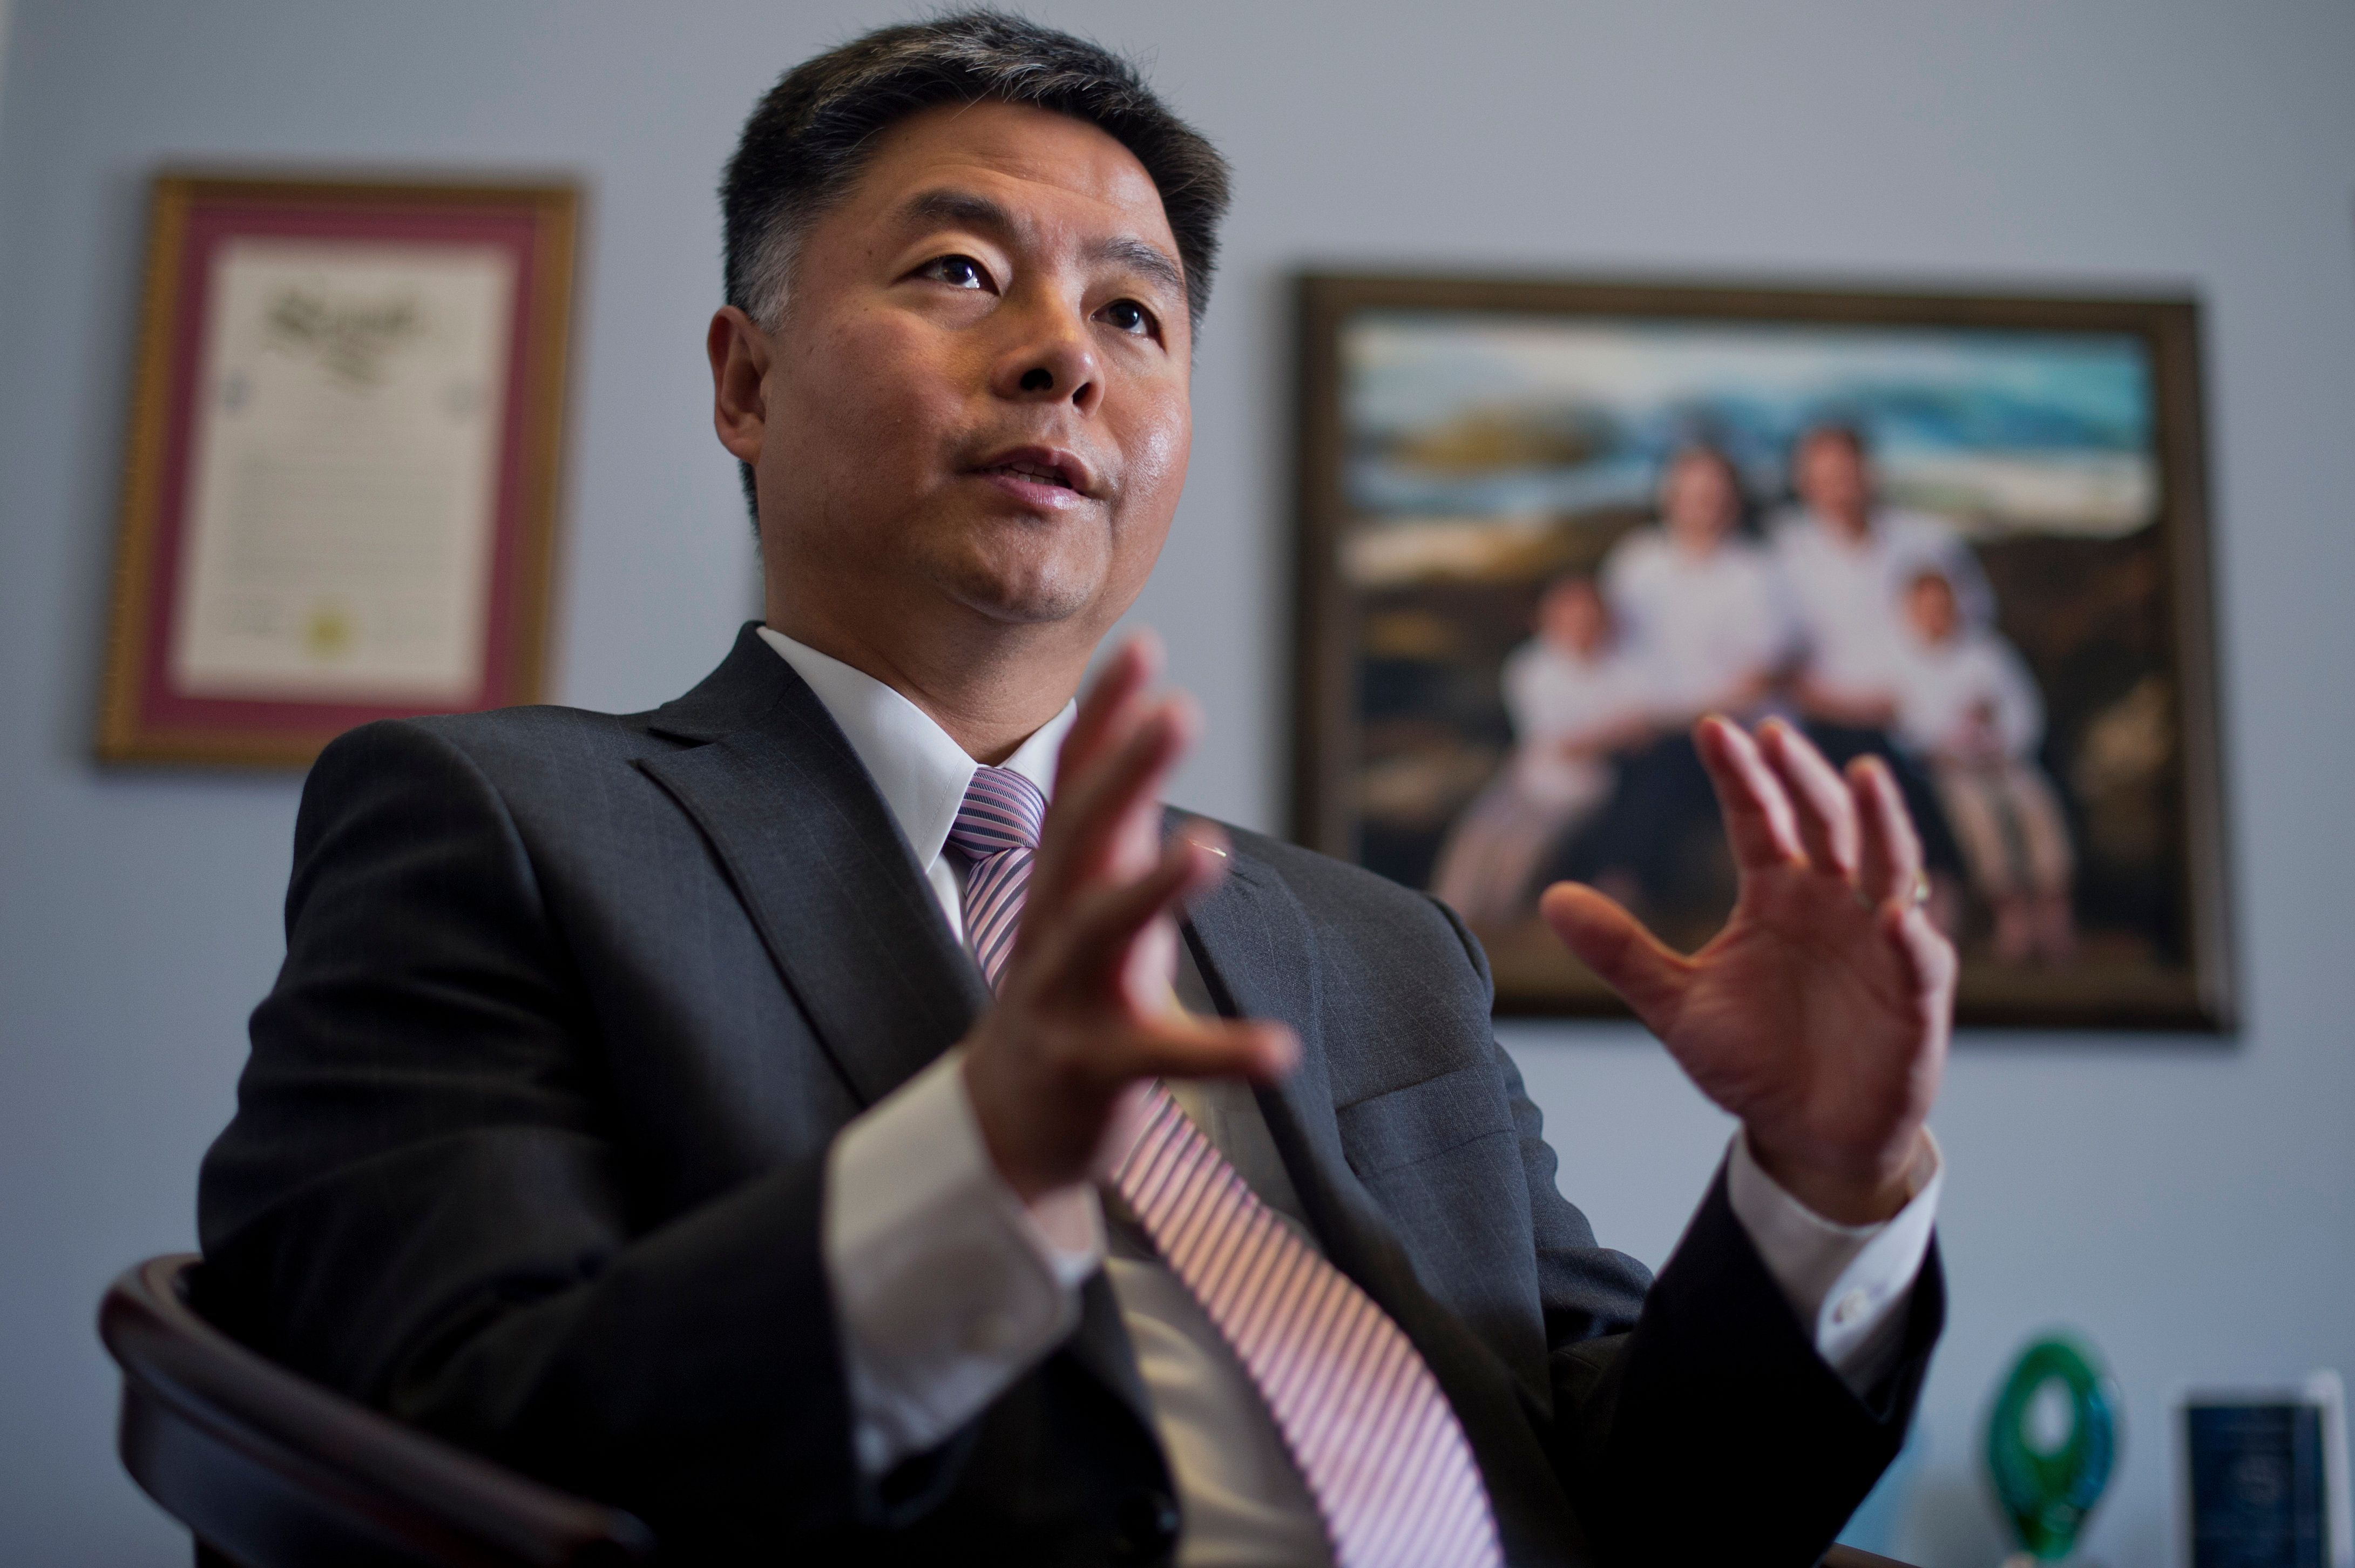 UNITED STATES - FEBRUARY 26: Rep. Ted Lieu, D-Calif., is interviewed by CQ Roll Call in his Cannon Building office, February 26, 2015. (Photo By Tom Williams/CQ Roll Call)